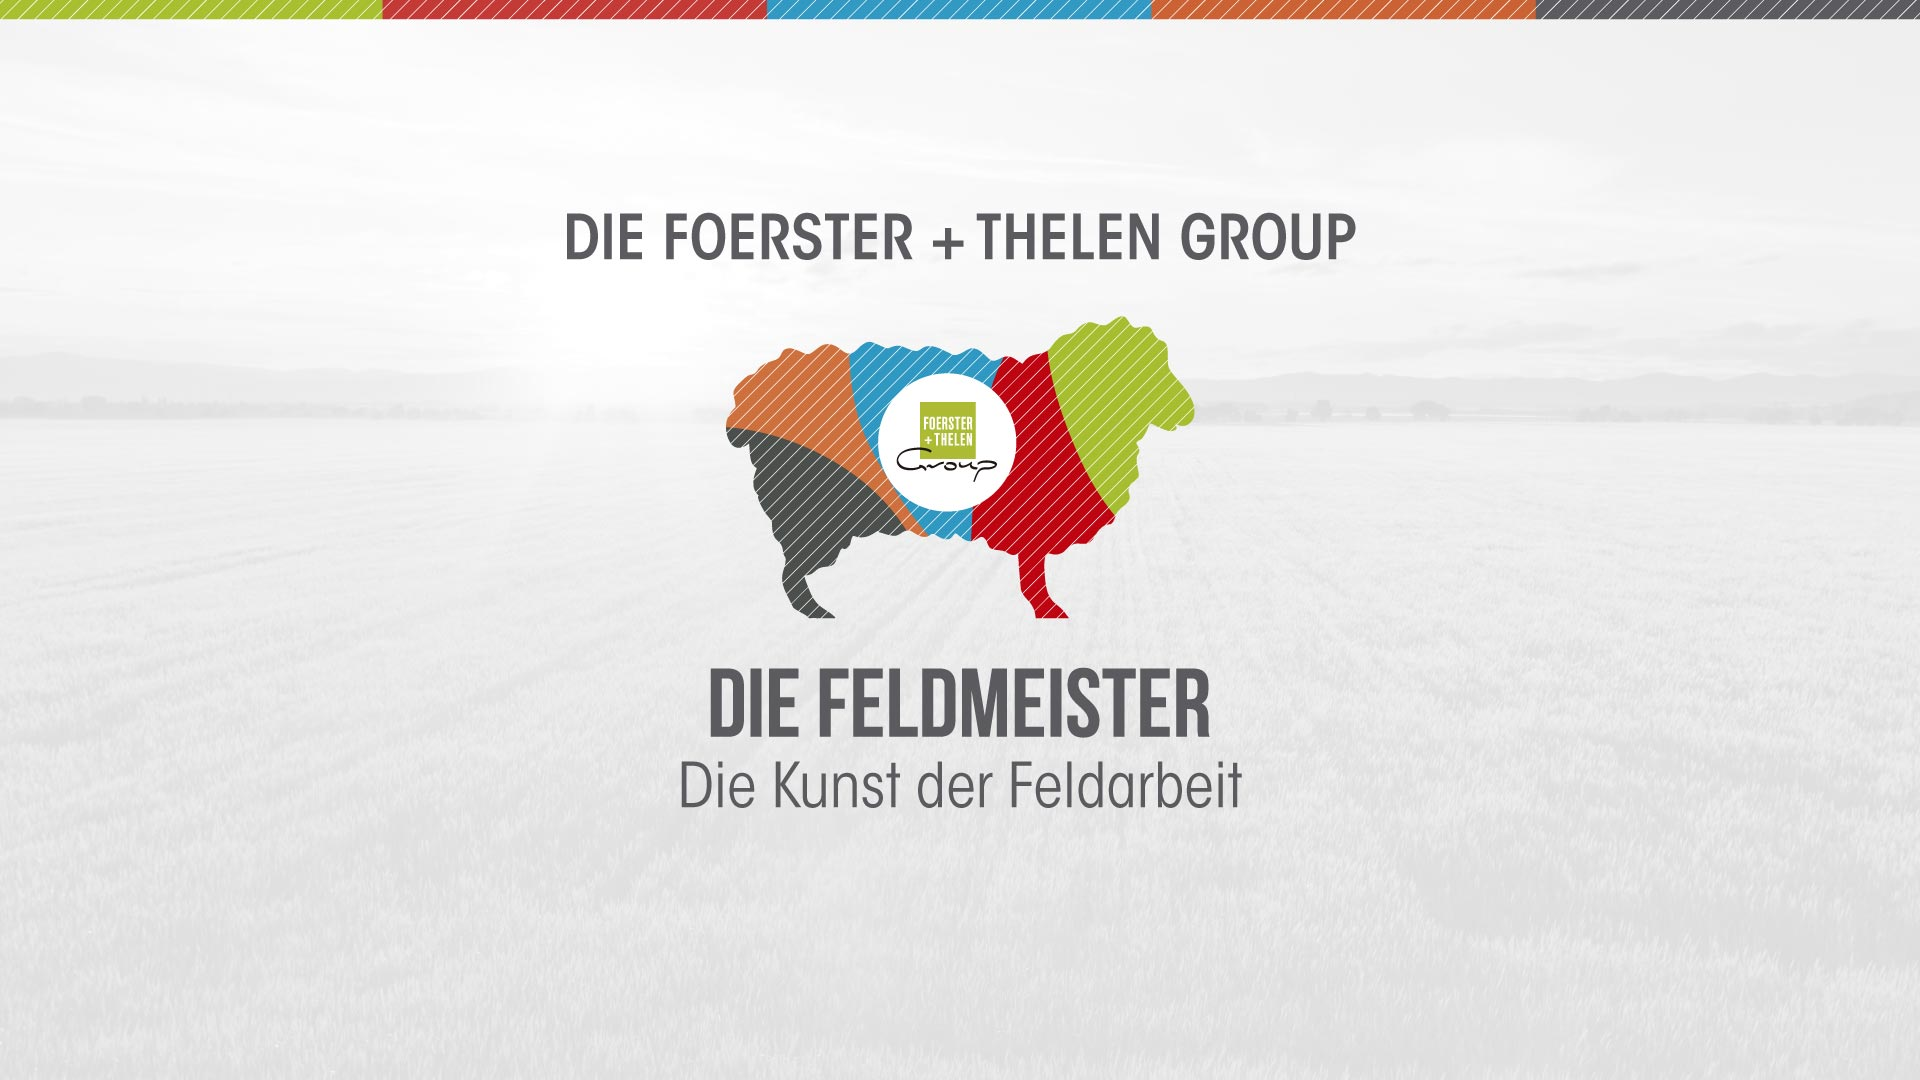 Die Foerster + Thelen Group